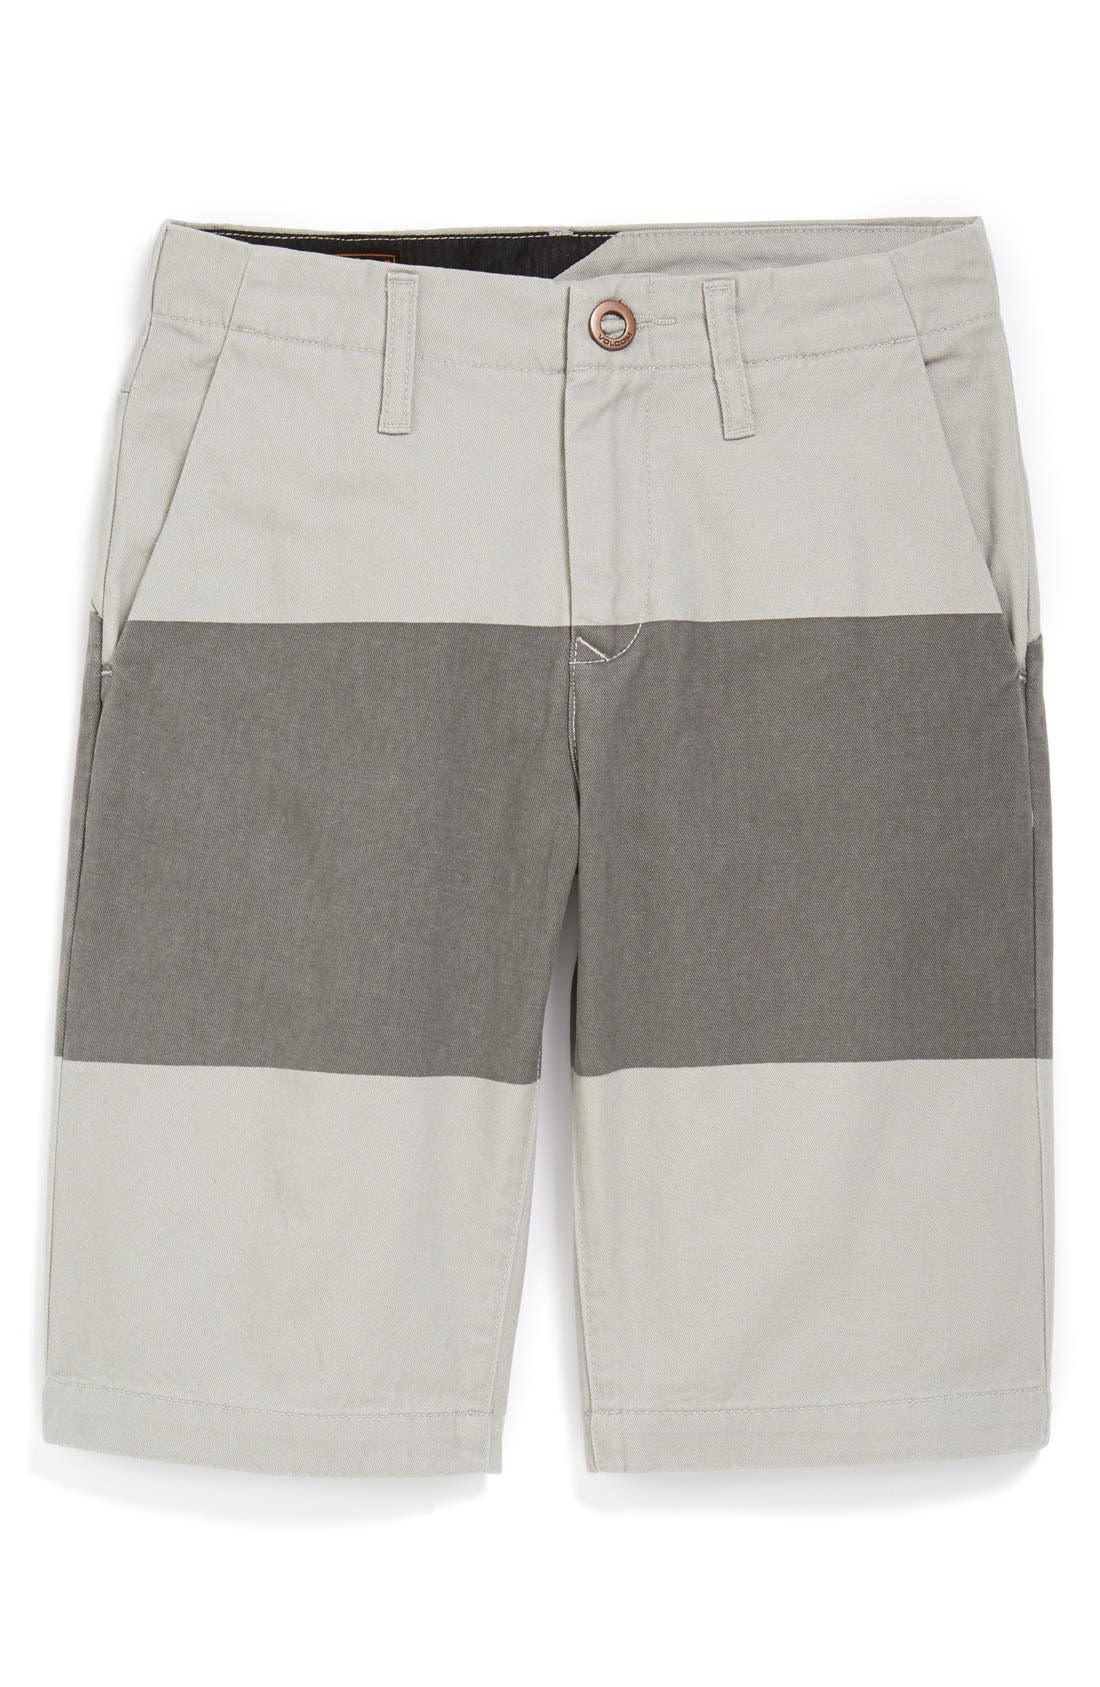 Main Image - Volcom Stripe Chino Shorts (Big Boys)